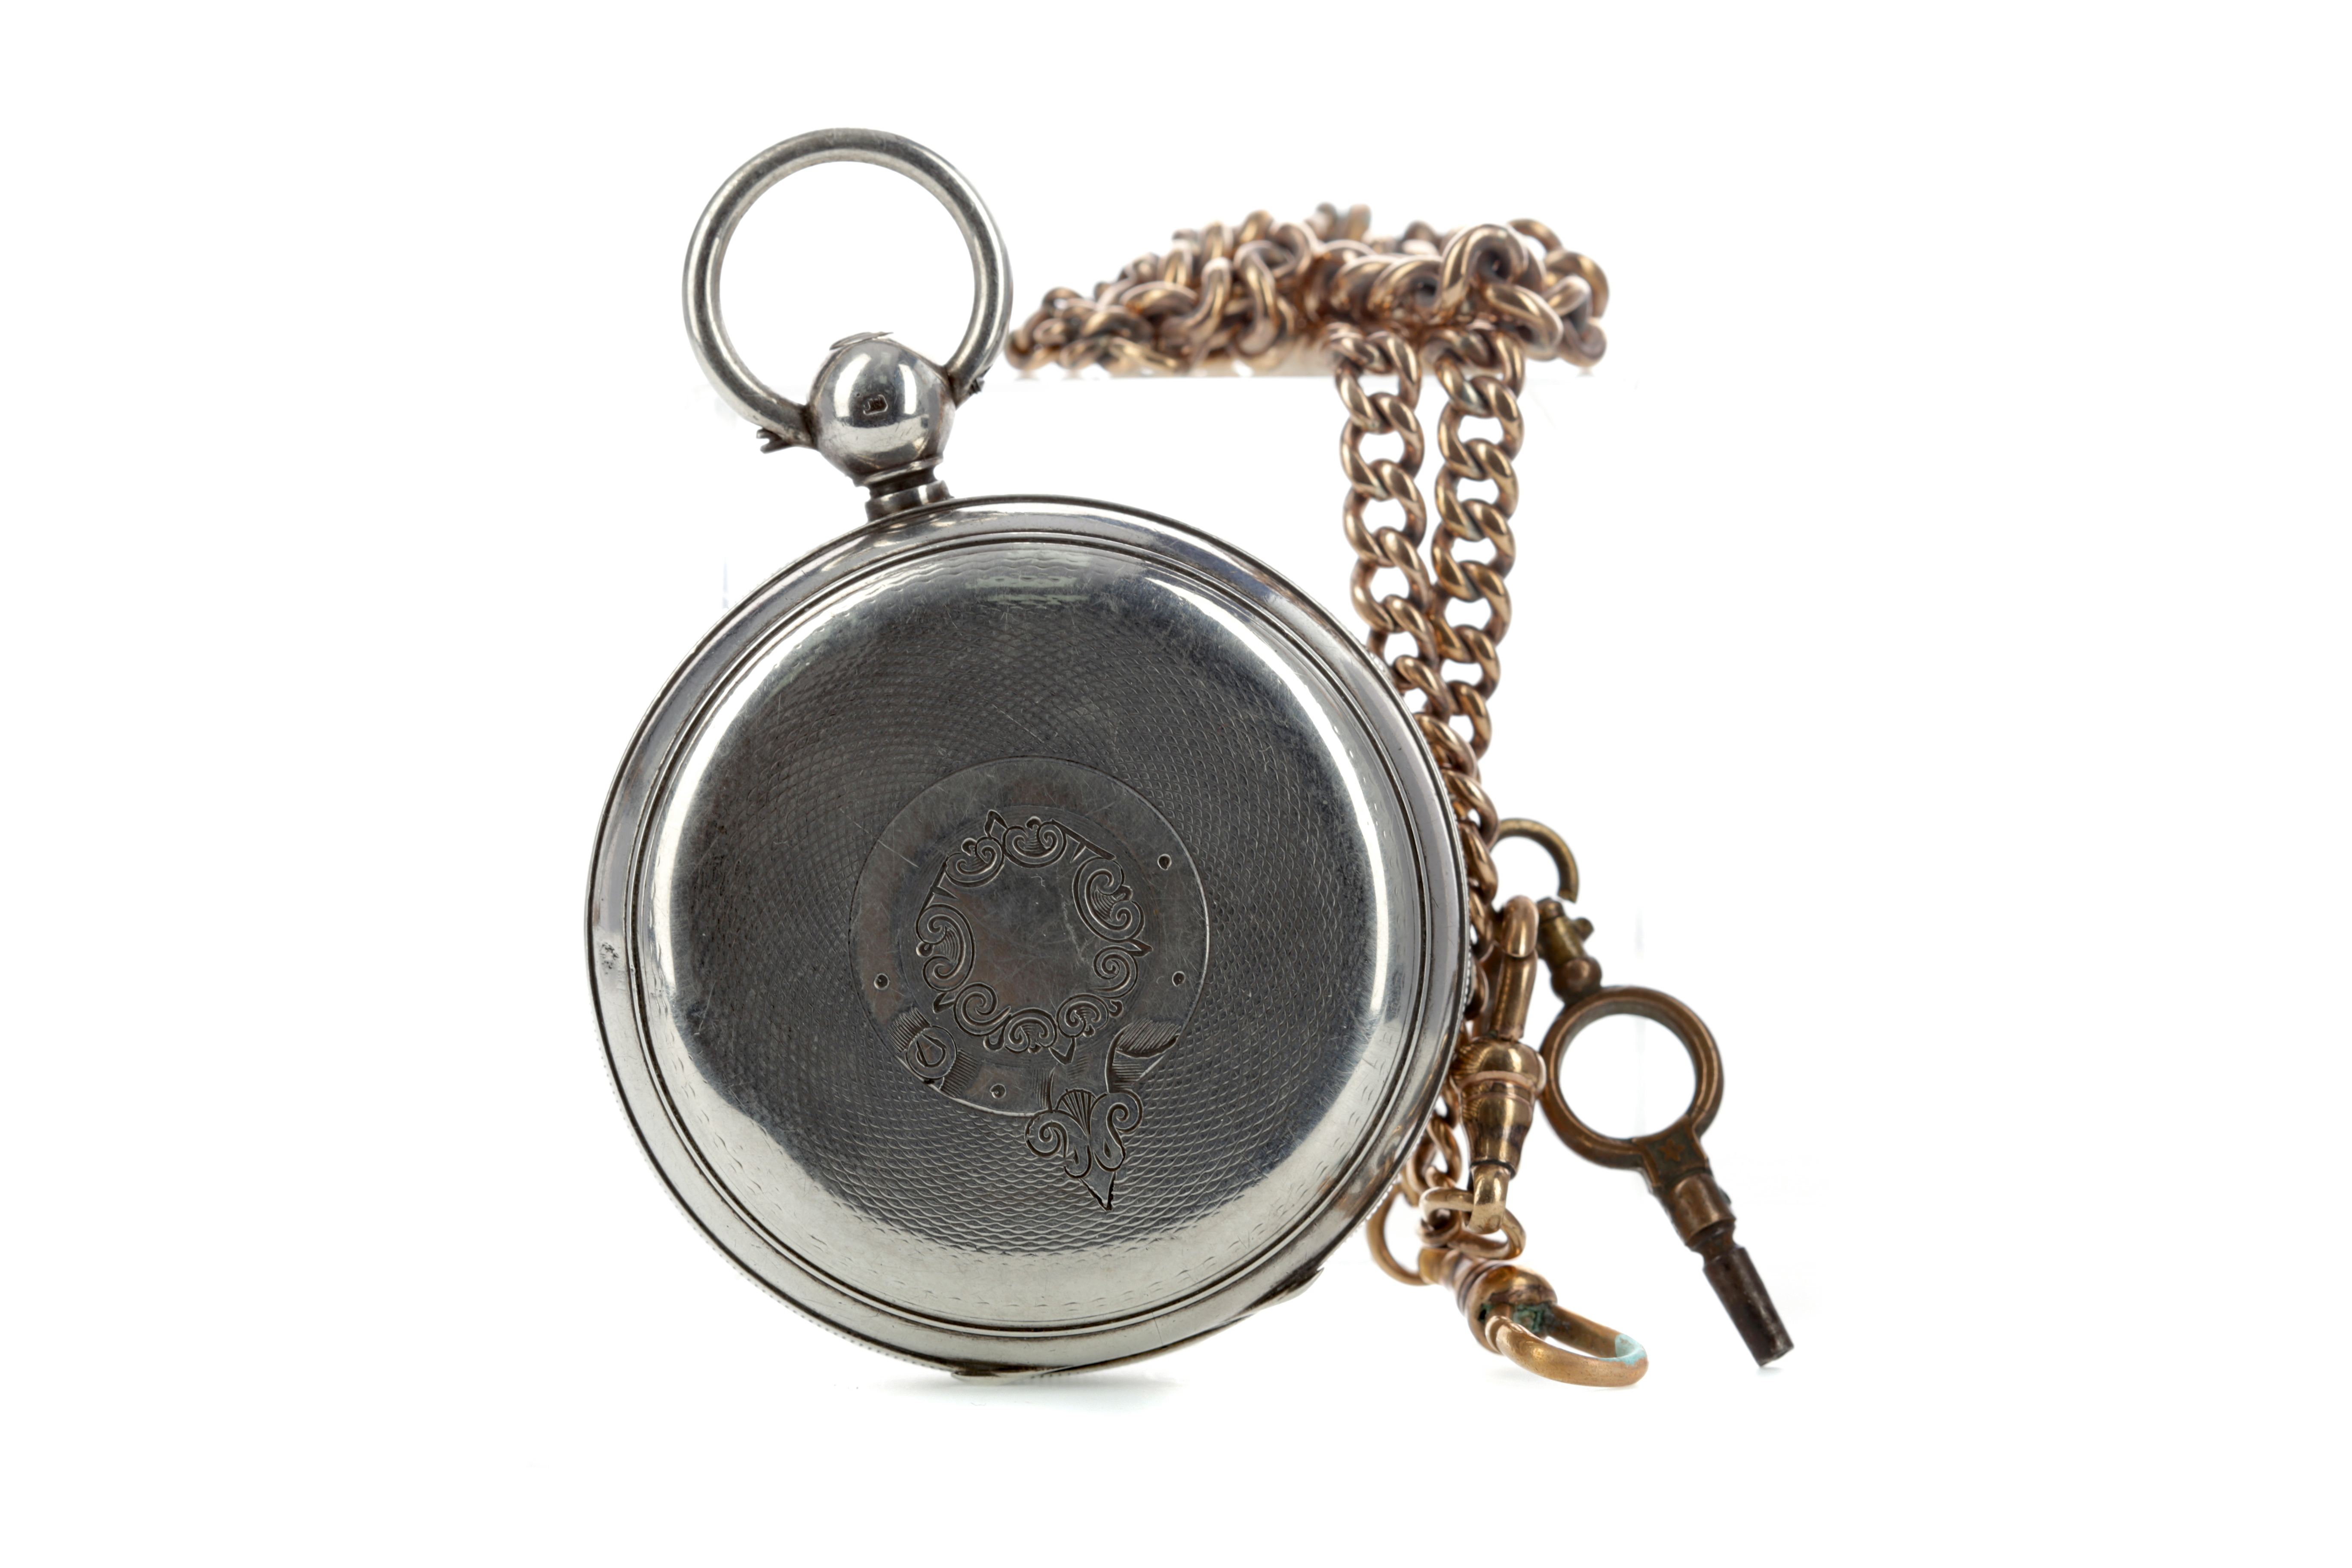 A SILVER CASED OPEN FACE POCKET WATCH WITH GOLD PLATED ALBERT CHAIN - Image 2 of 2